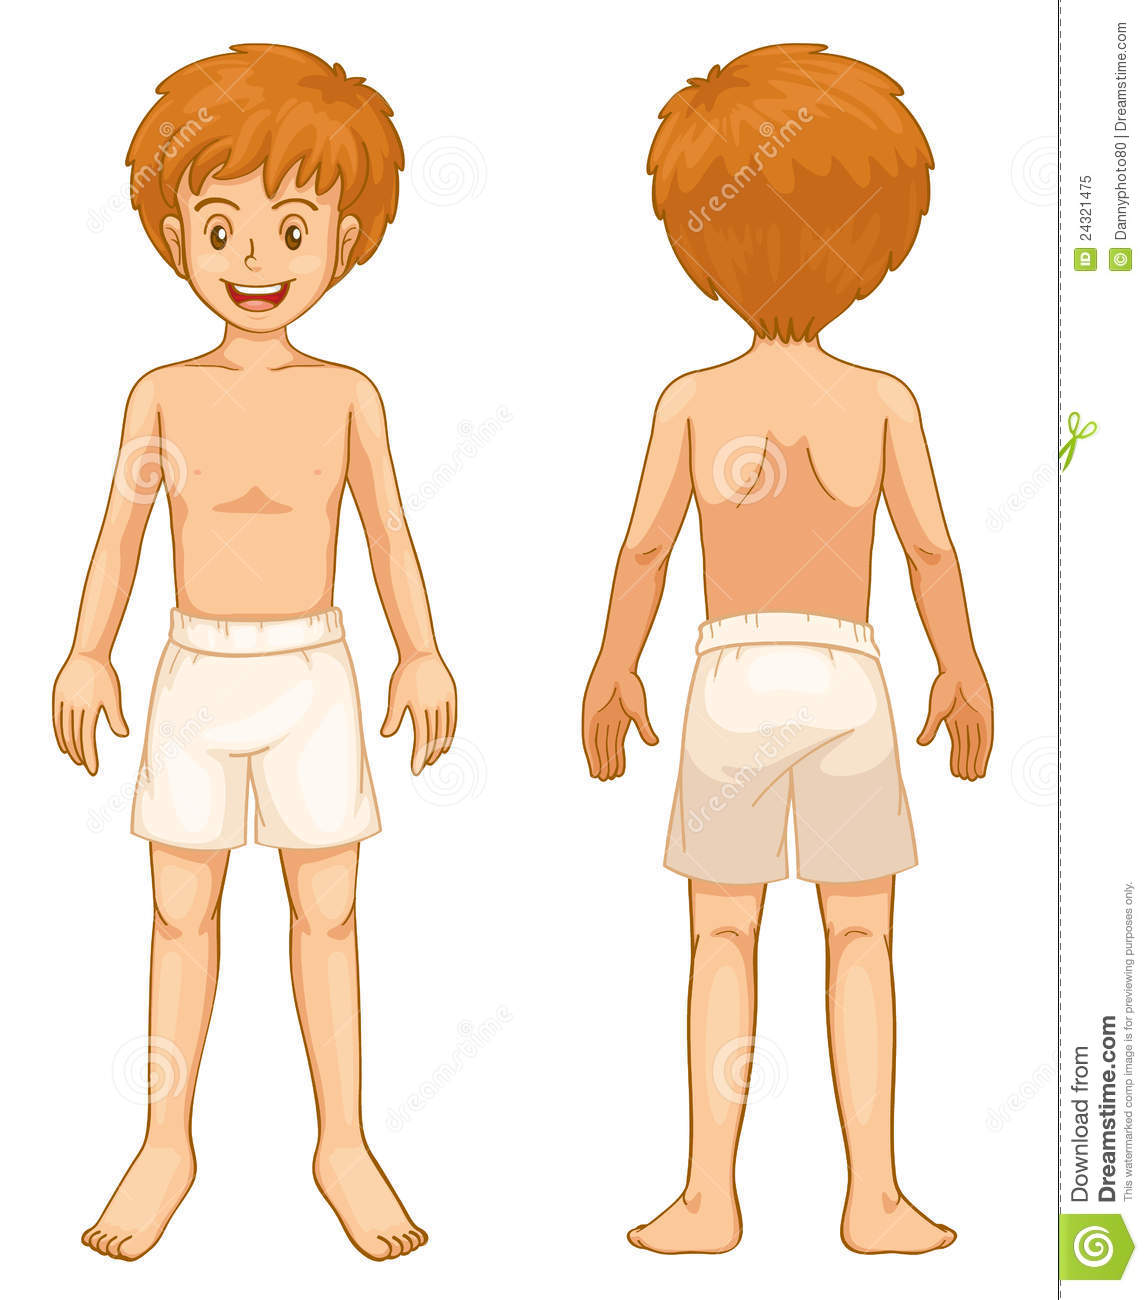 Boy Body Parts Stock Vector Illustration Of Person Male 24321475